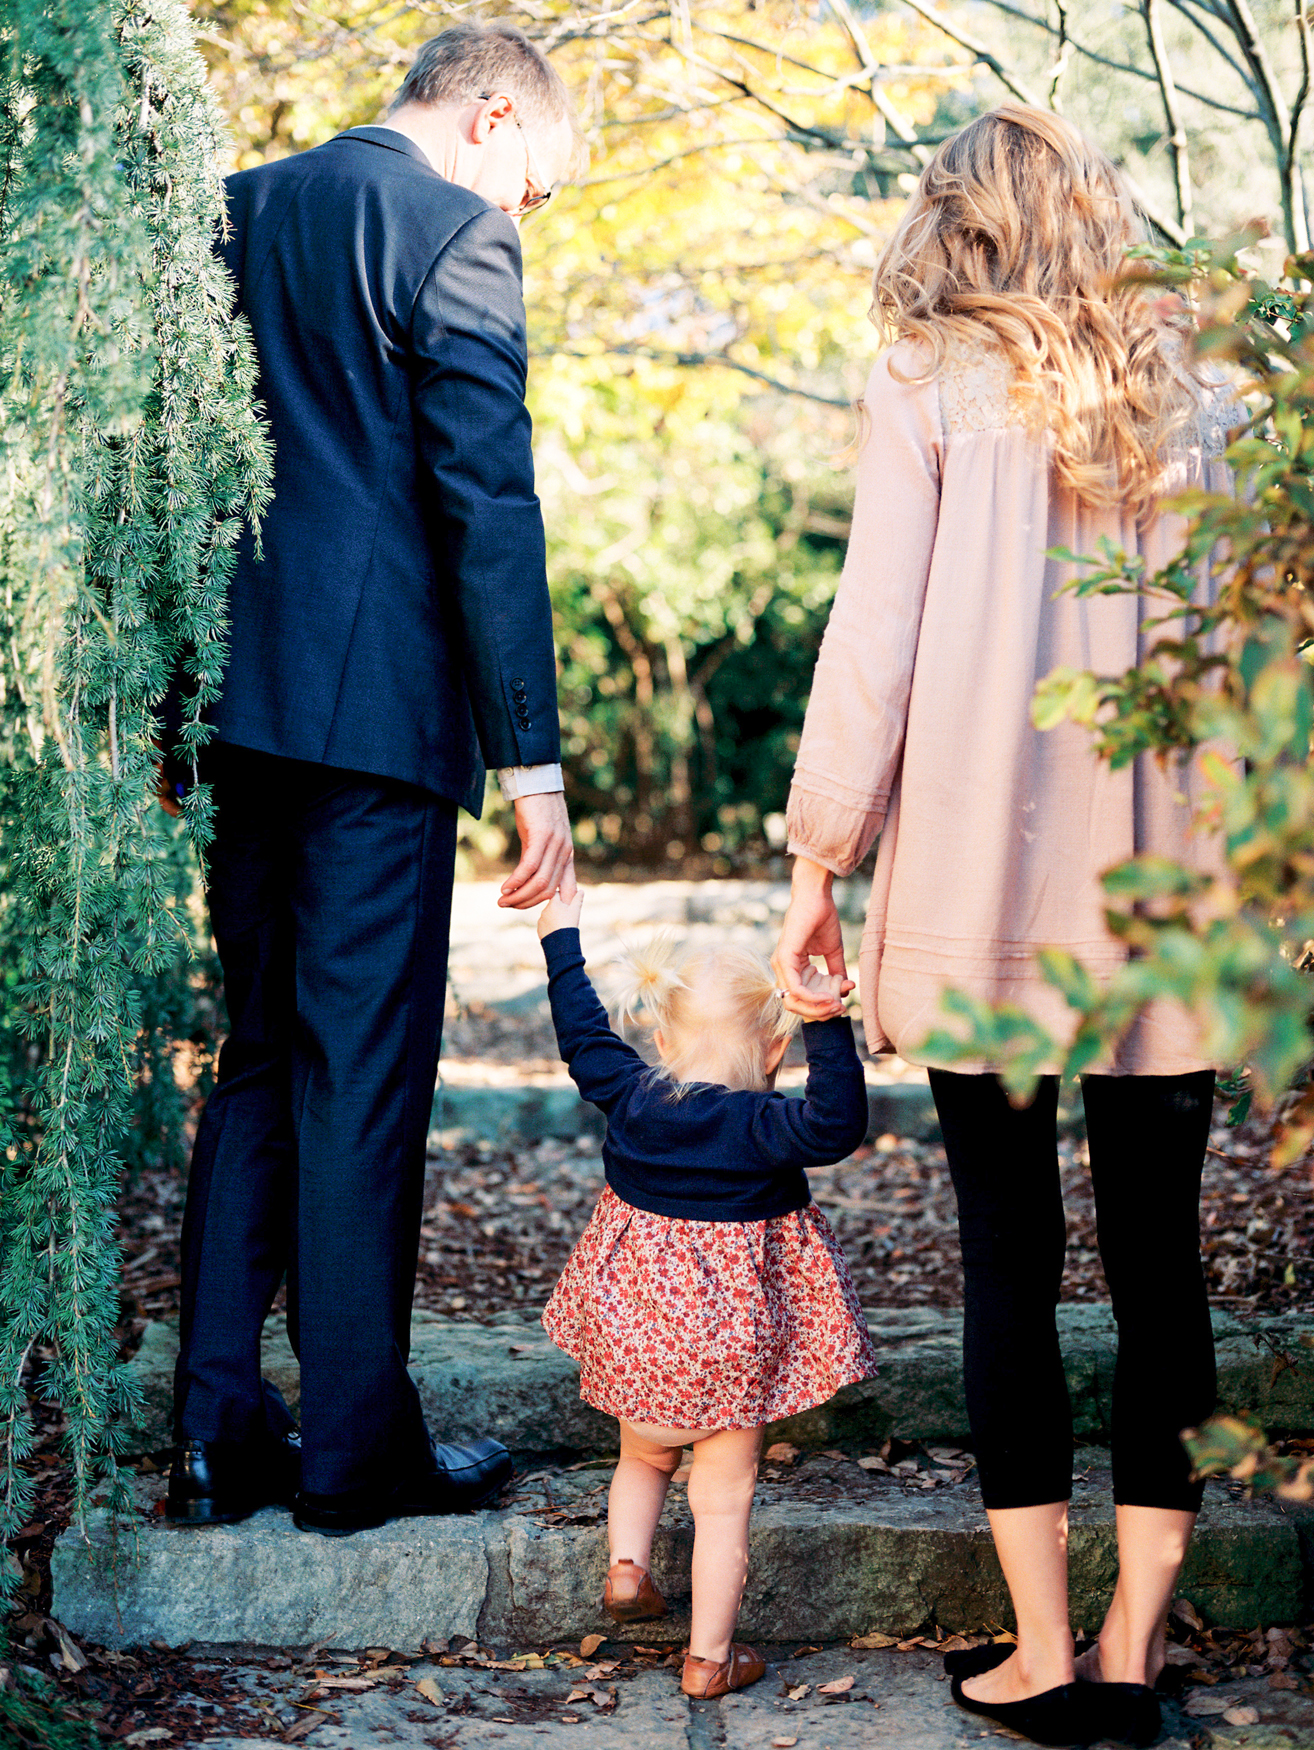 Natural Family Portrait Session at the Dallas Arboretum | Danielle M. Sabol, Dallas Texas Fine Art Wedding Photographer